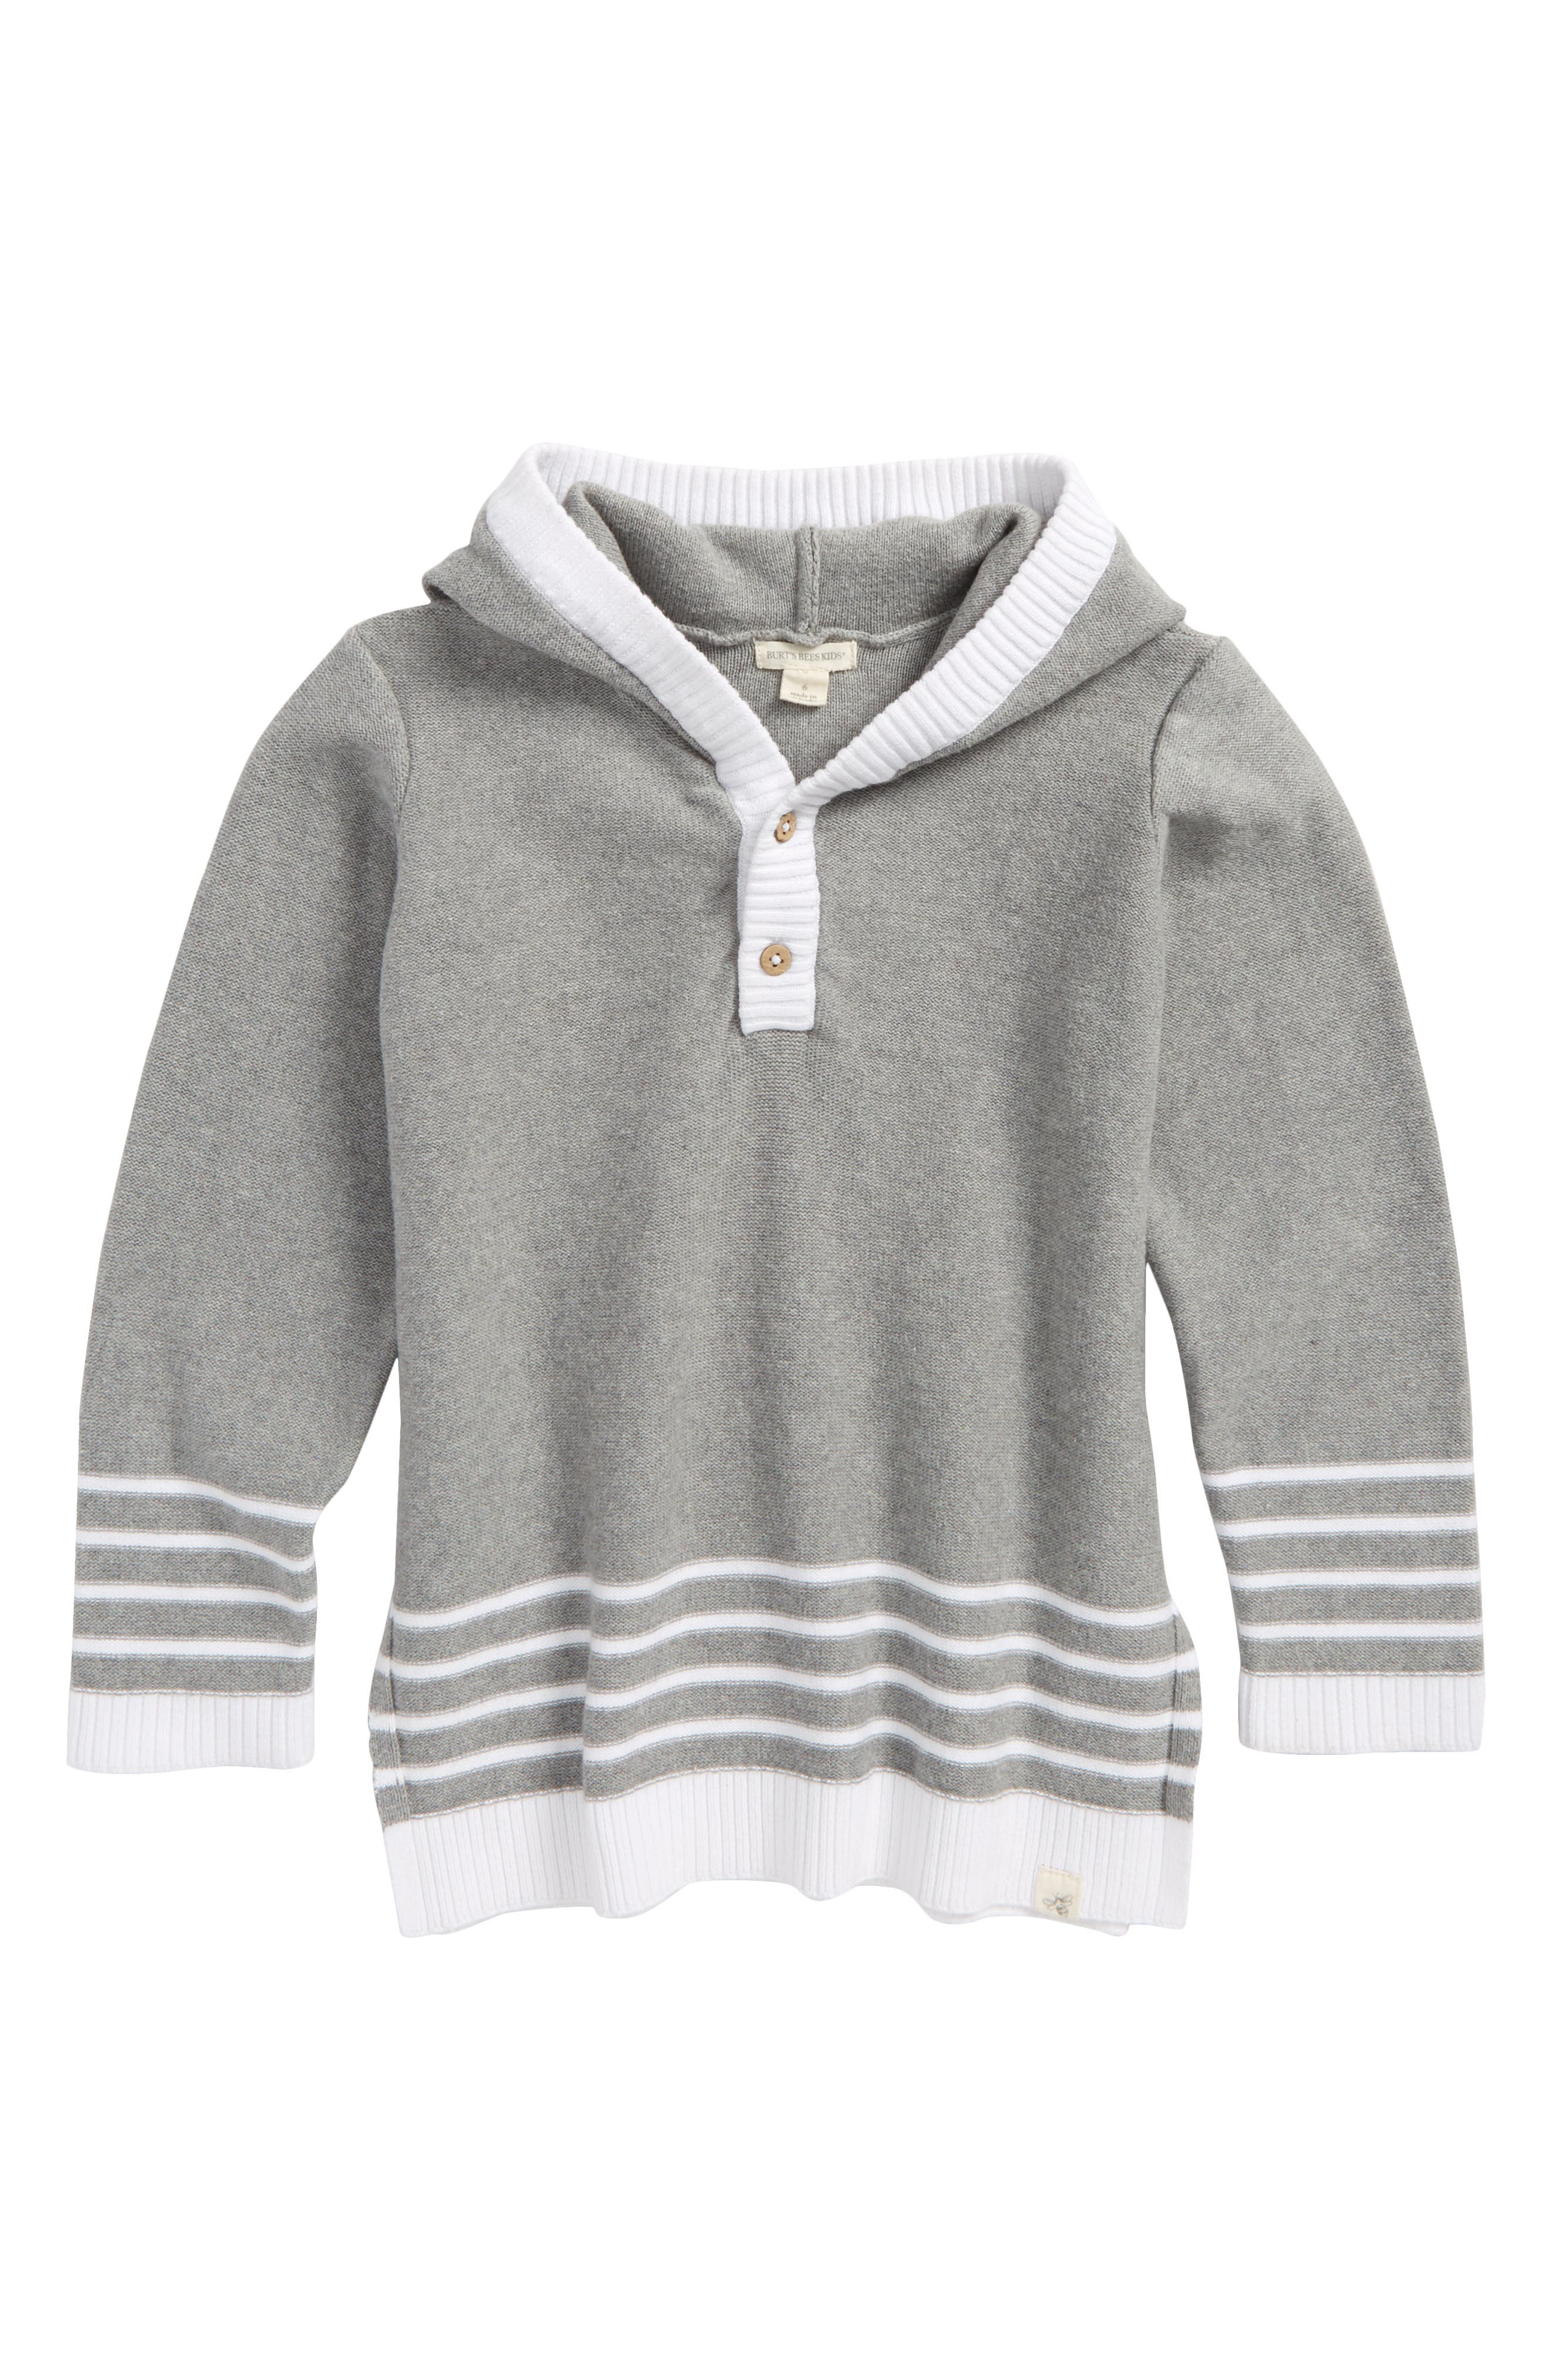 Main Image - Burt's Bees Baby Organic Cotton Knit Hoodie (Toddler Boys & Little Boys)